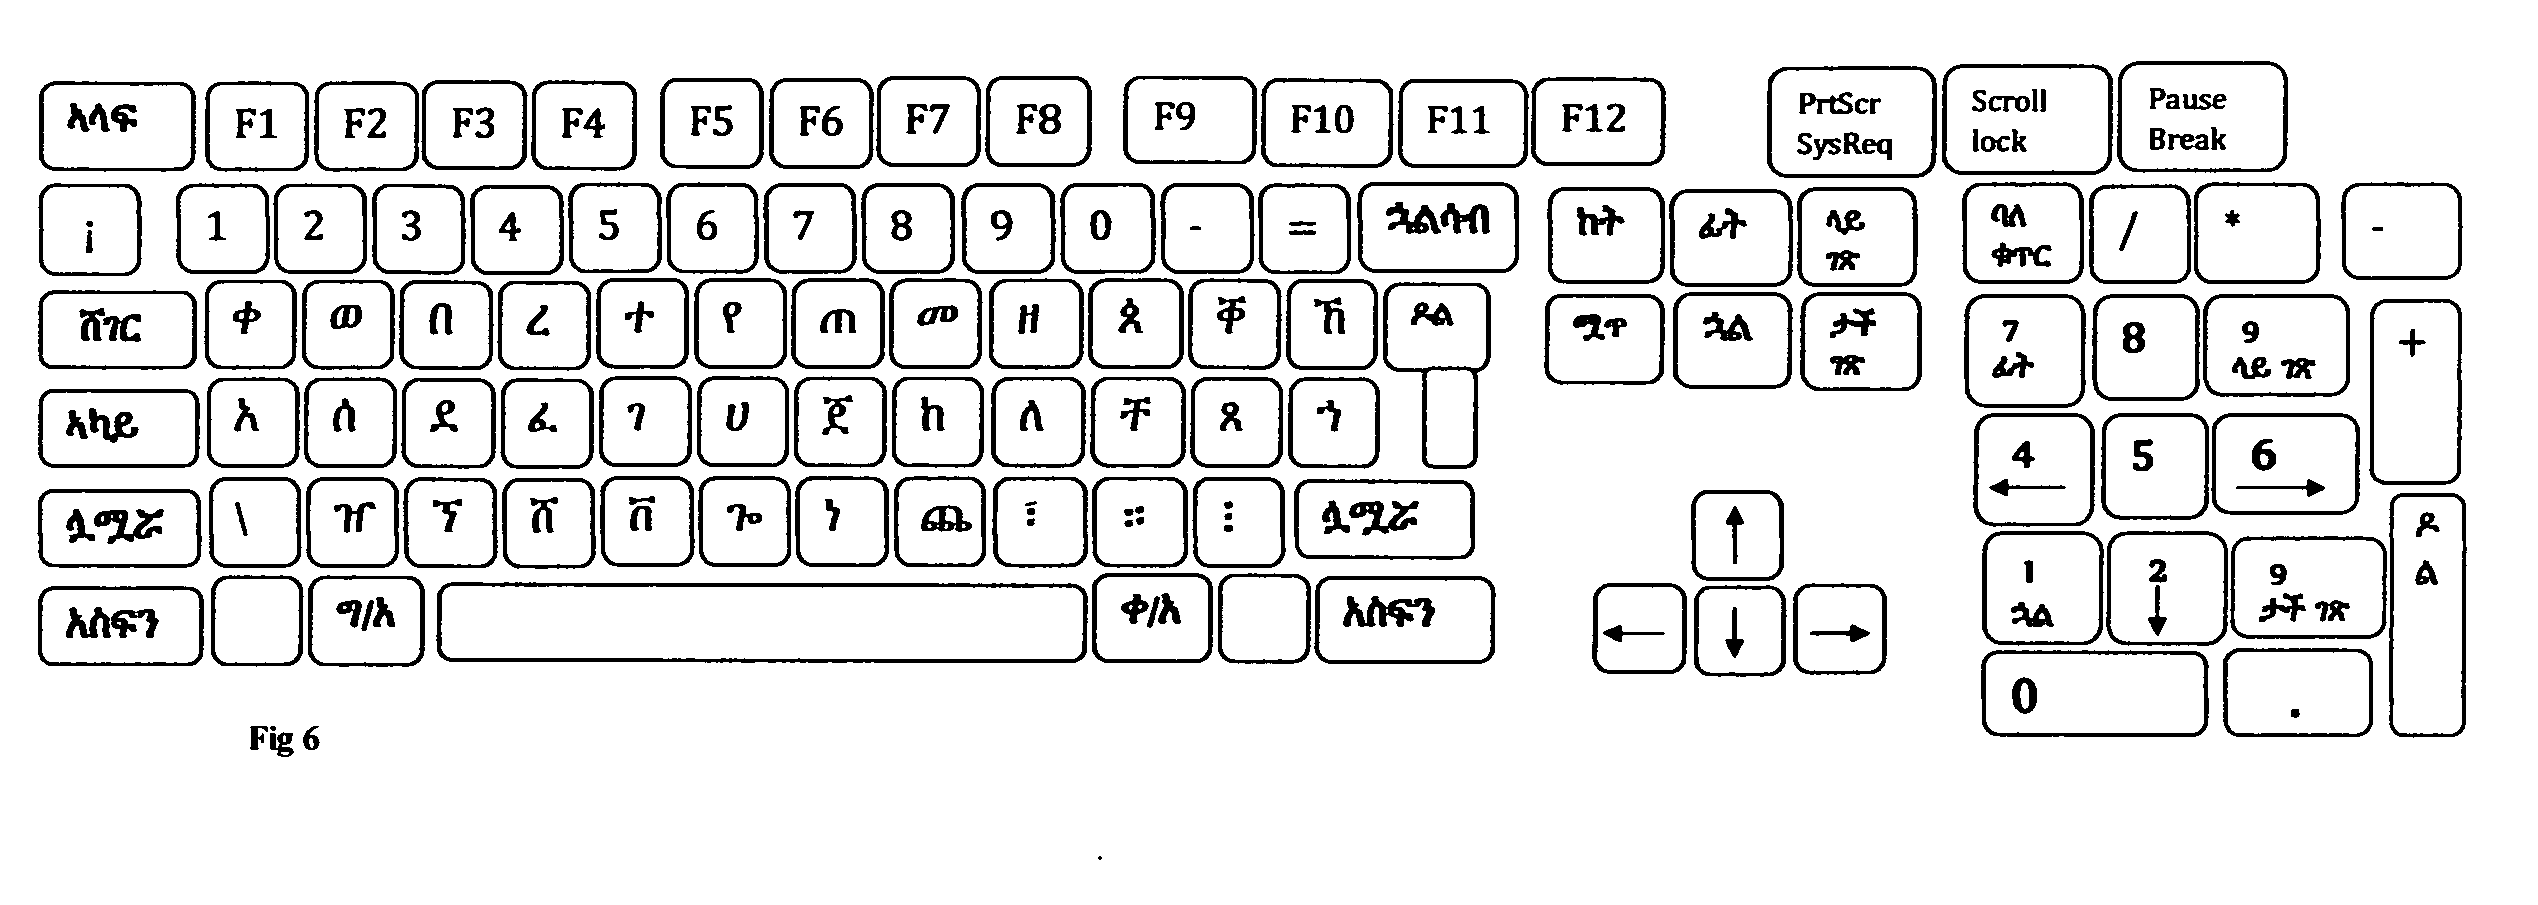 Computer Keyboard Drawing | www.pixshark.com - Images ...